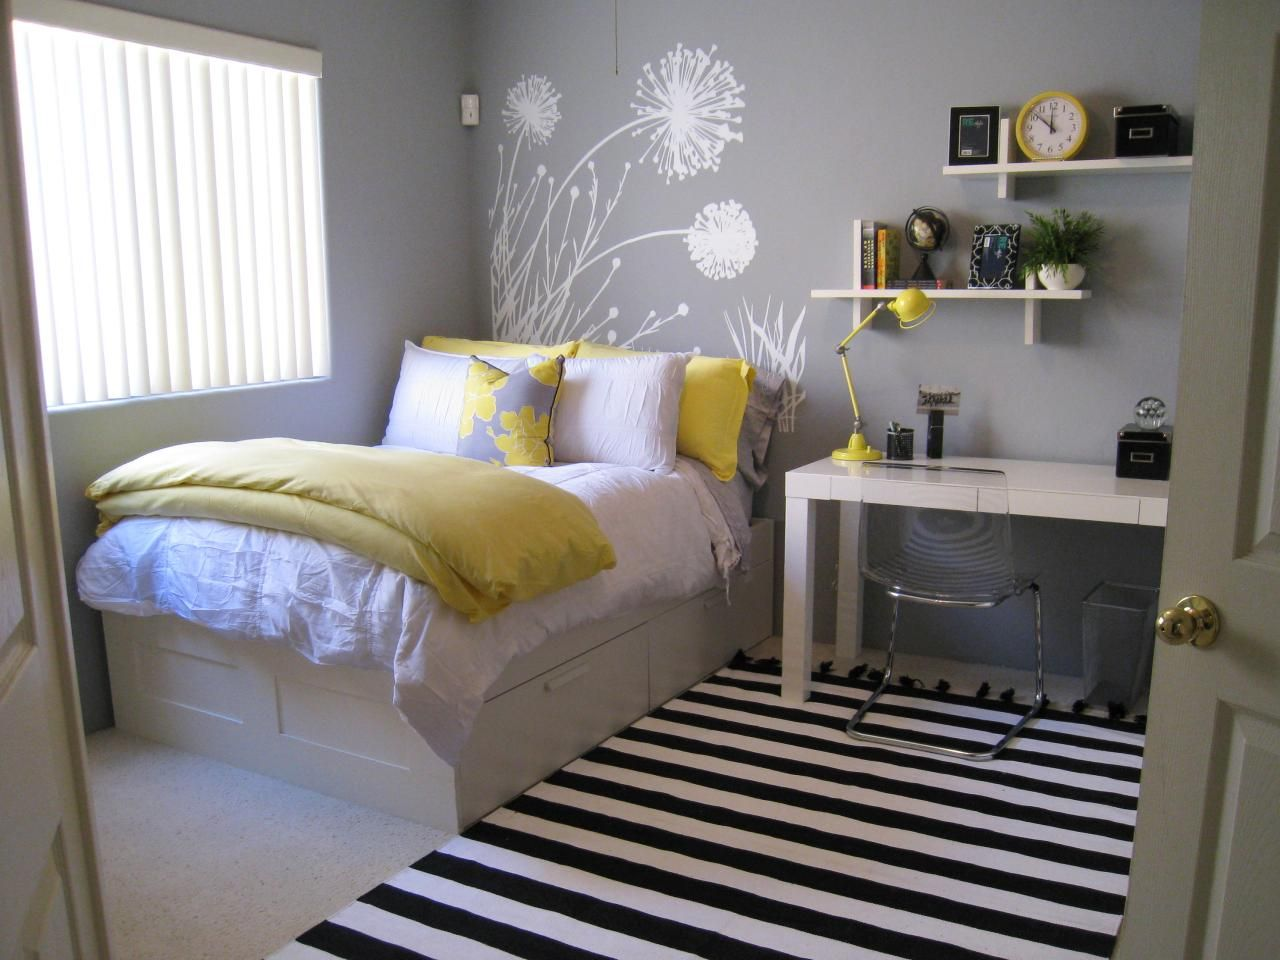 45 exemples de t te de lit originale en styles diff rents idee tete de lit ado et tete de. Black Bedroom Furniture Sets. Home Design Ideas